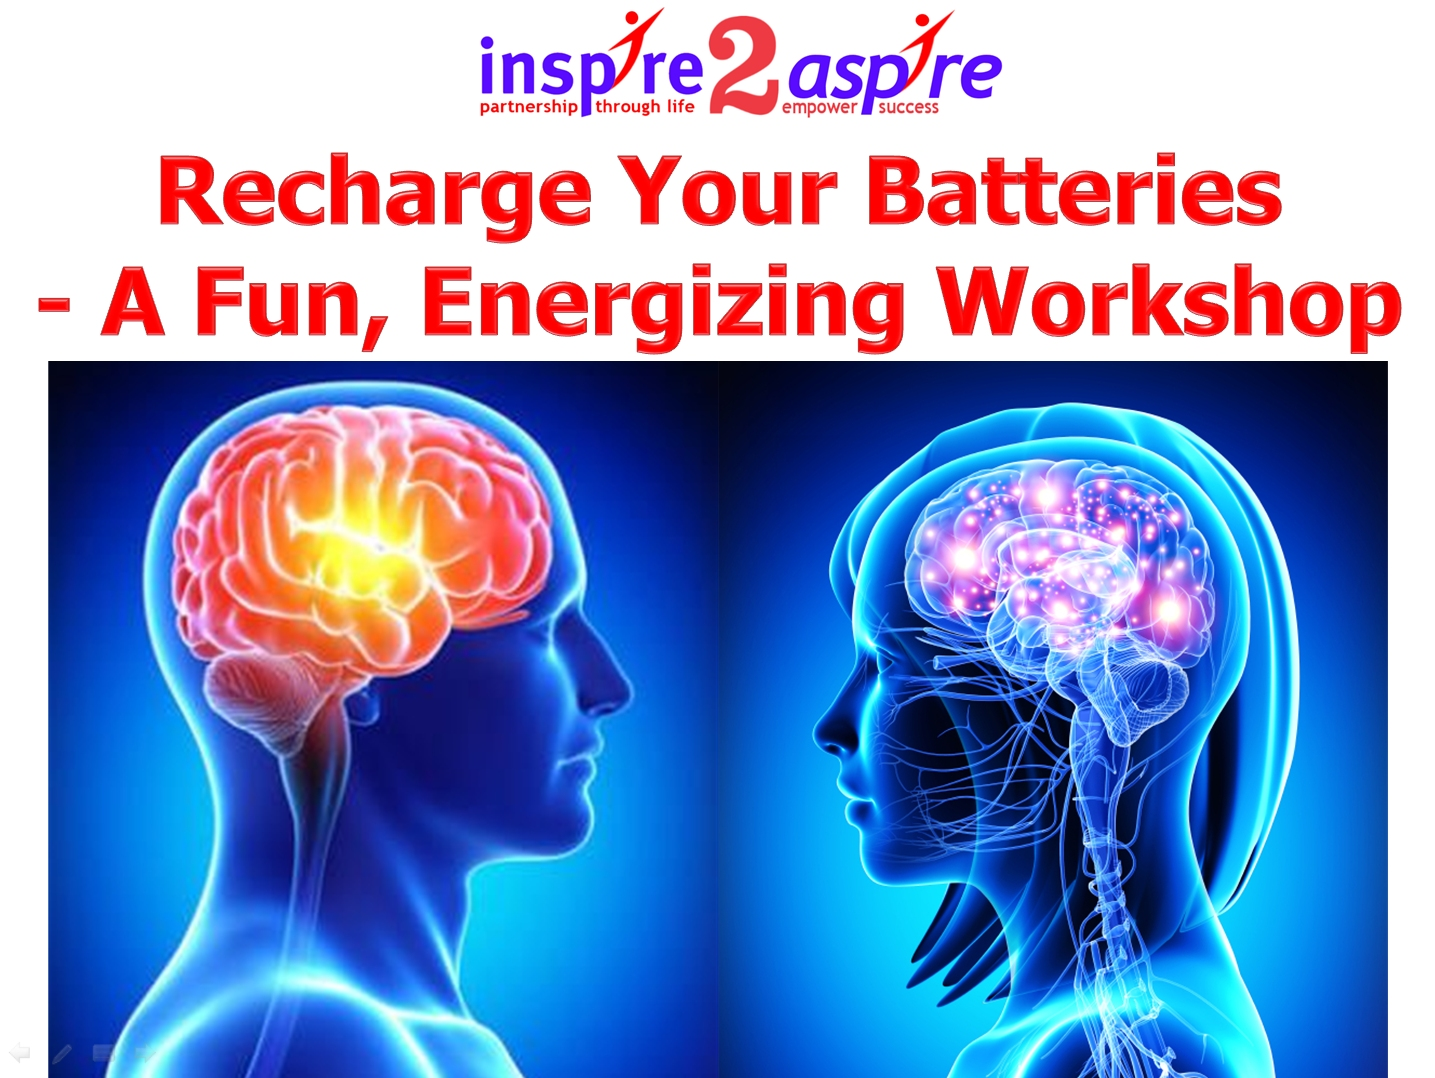 Recharge & Energize